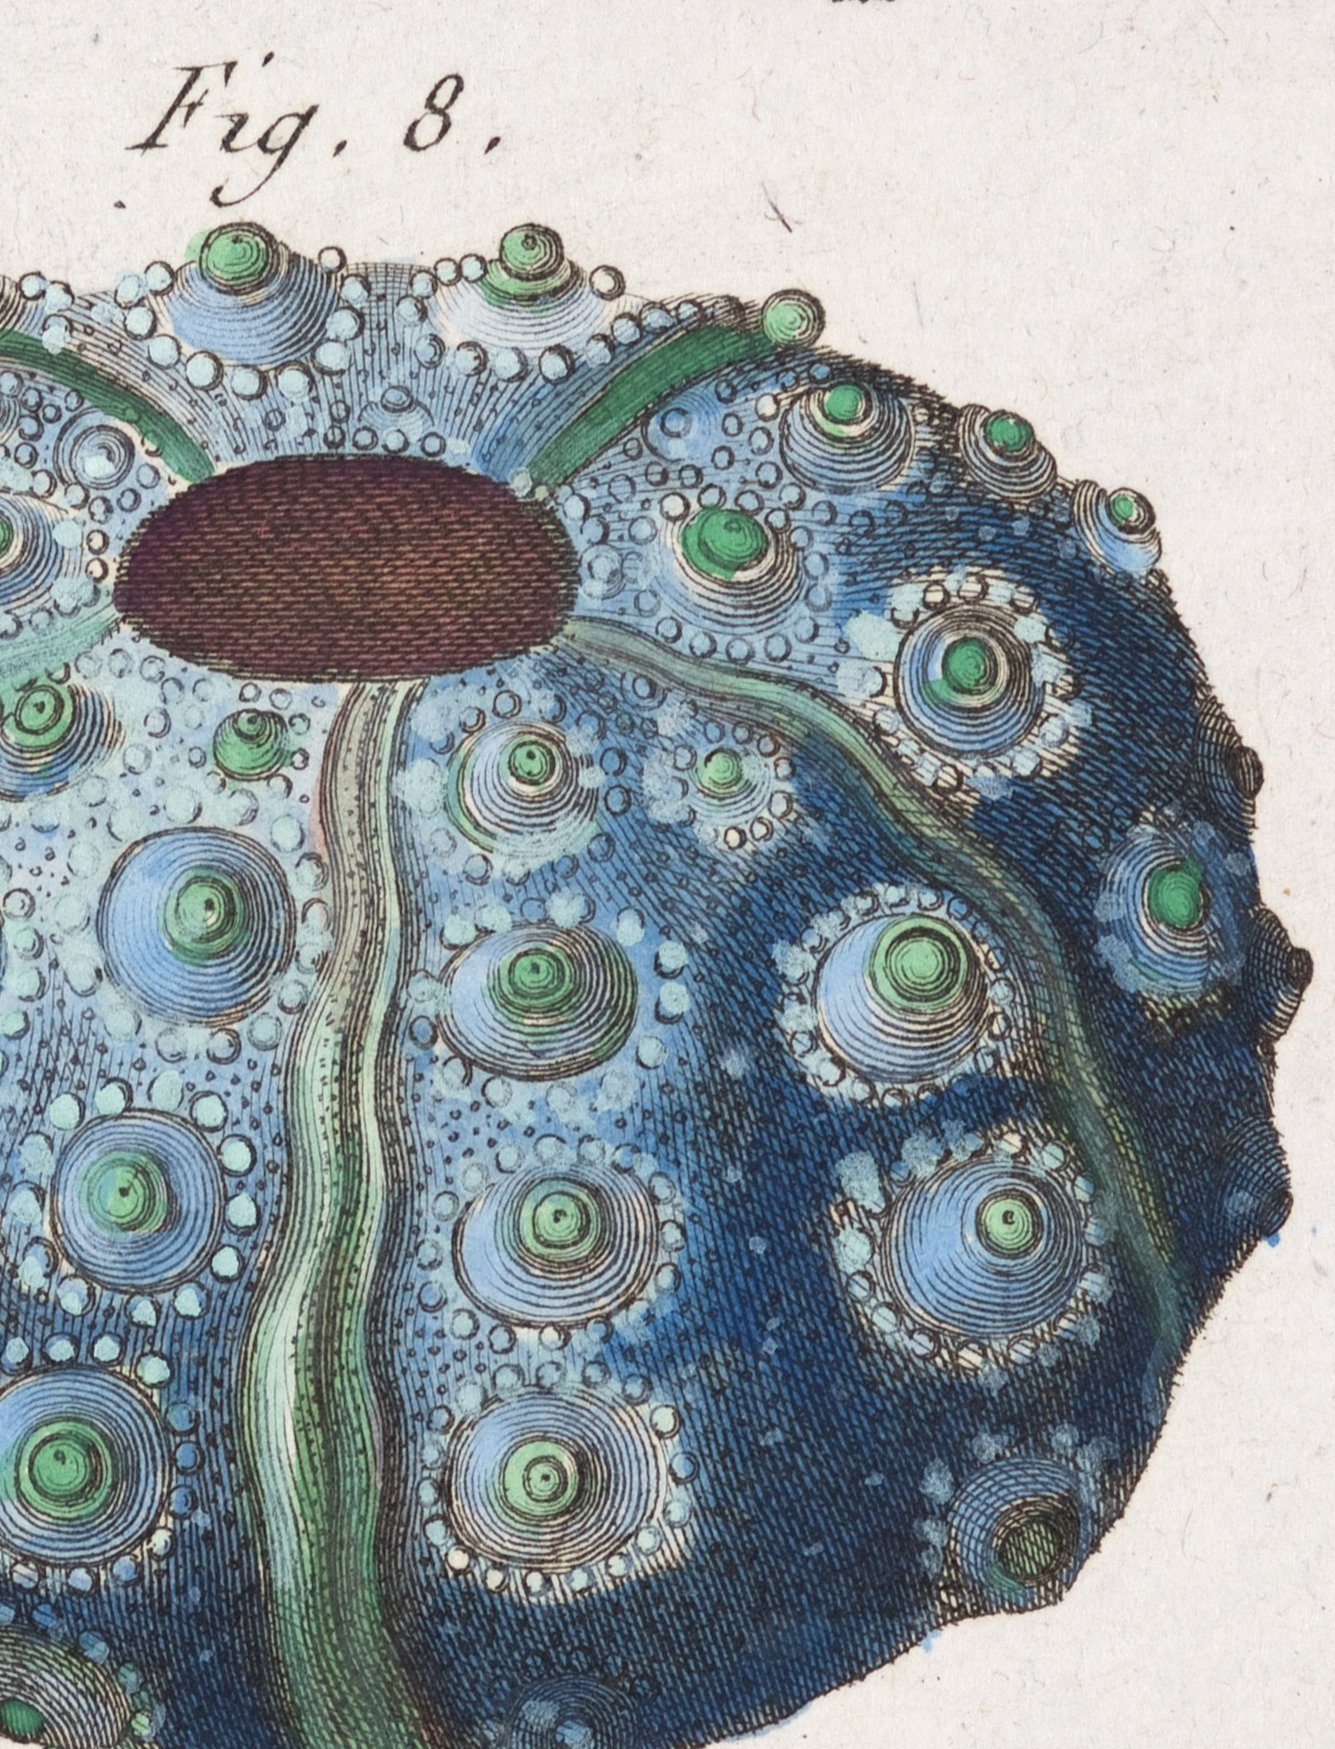 Shapes are an important way of classifying experience as suggested by this French engraving of sea urchins.